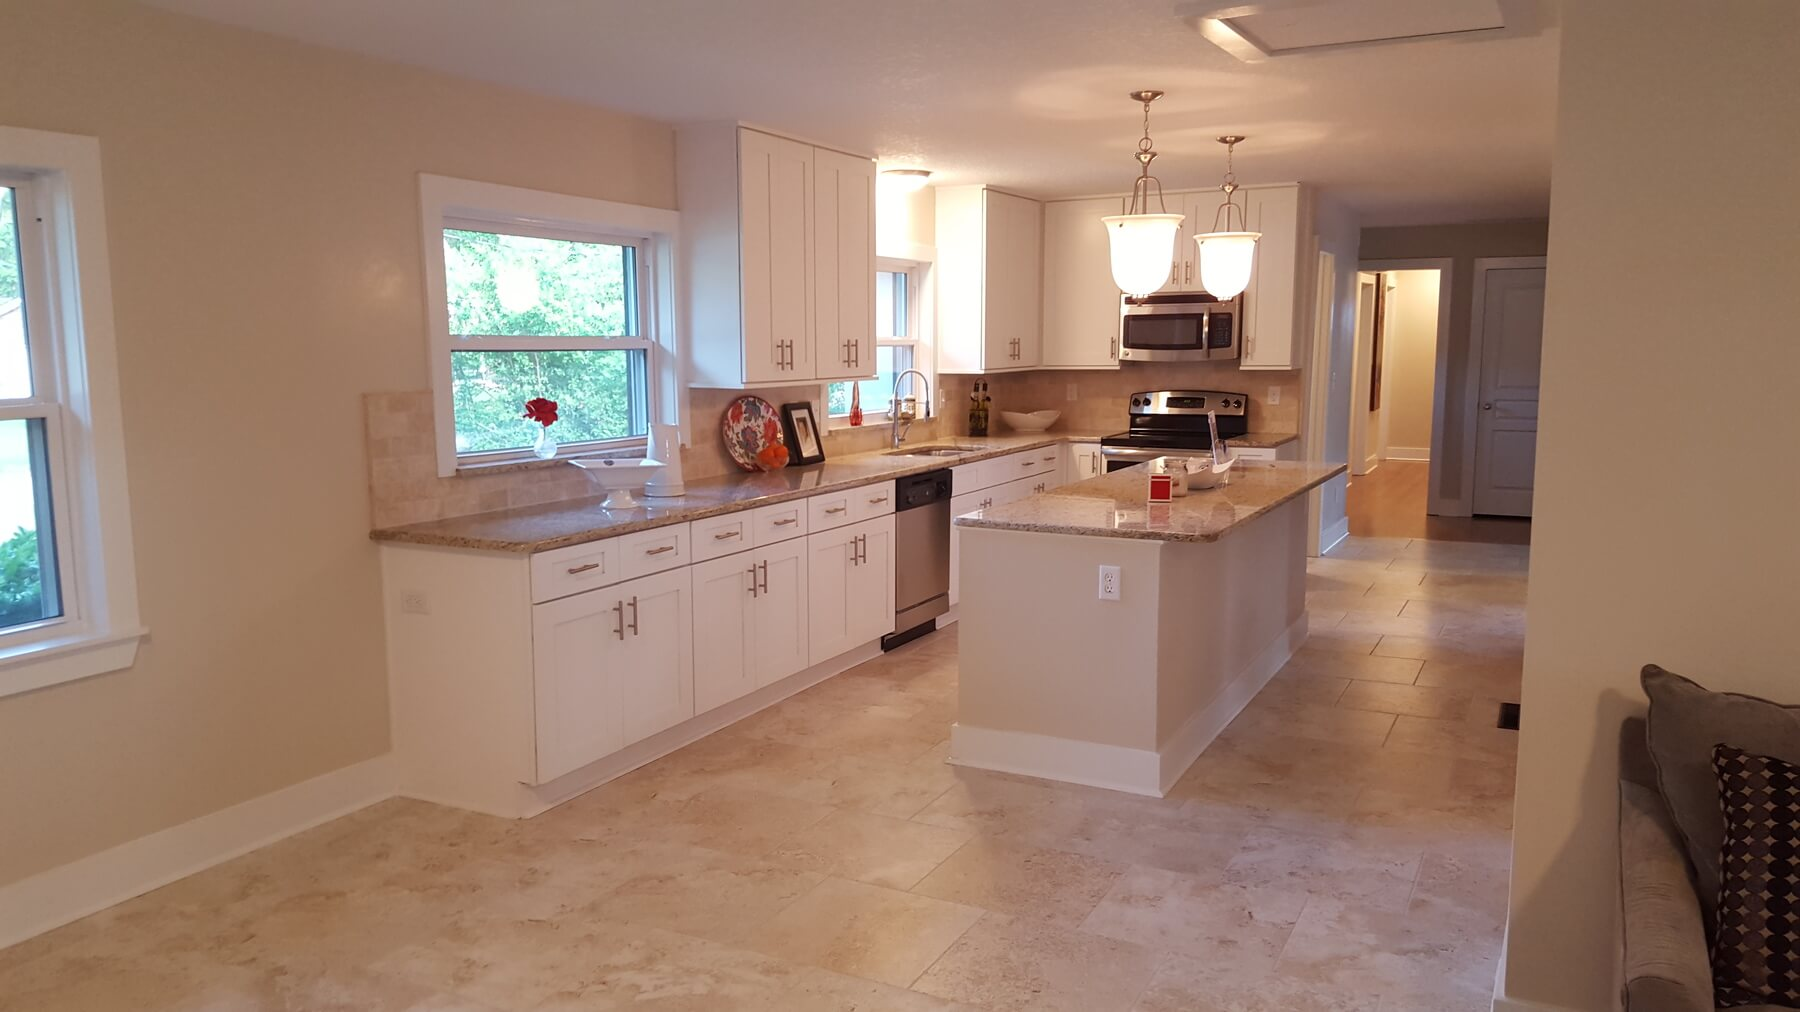 kitchens kitchen remodel jacksonville fl View More